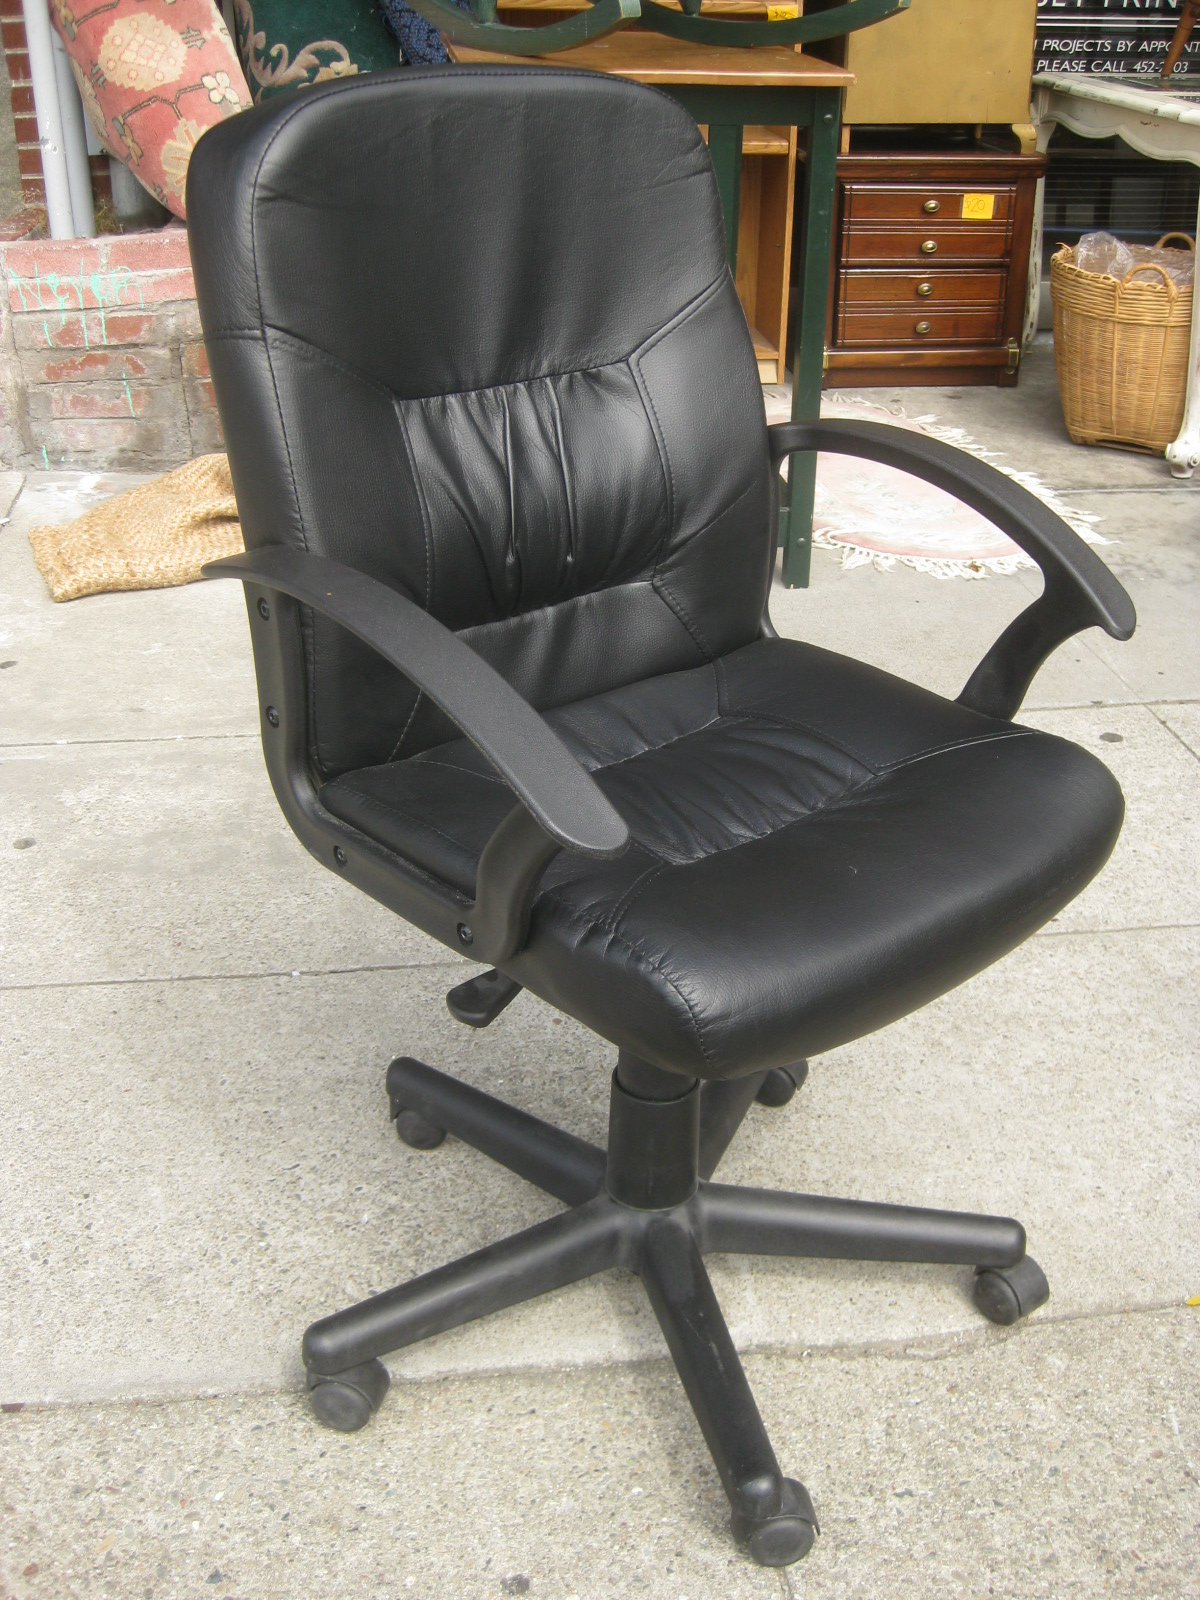 UHURU FURNITURE & COLLECTIBLES: SOLD - Comfy Office Chair ...